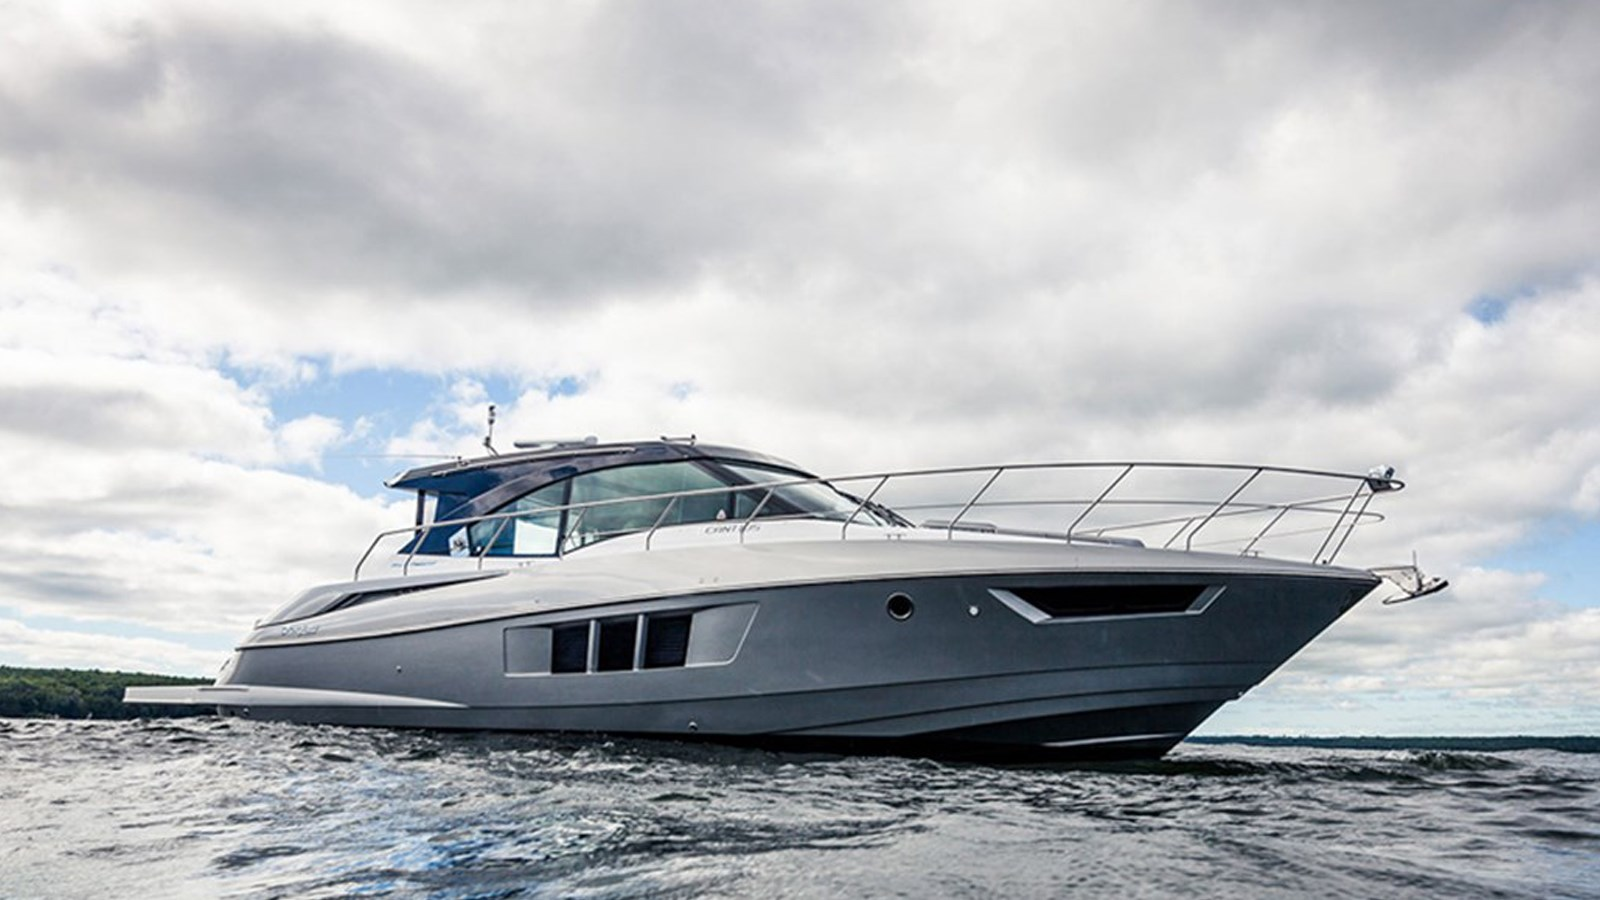 2016 Cruisers Yachts 45 Cantius Black Diamond For Sale